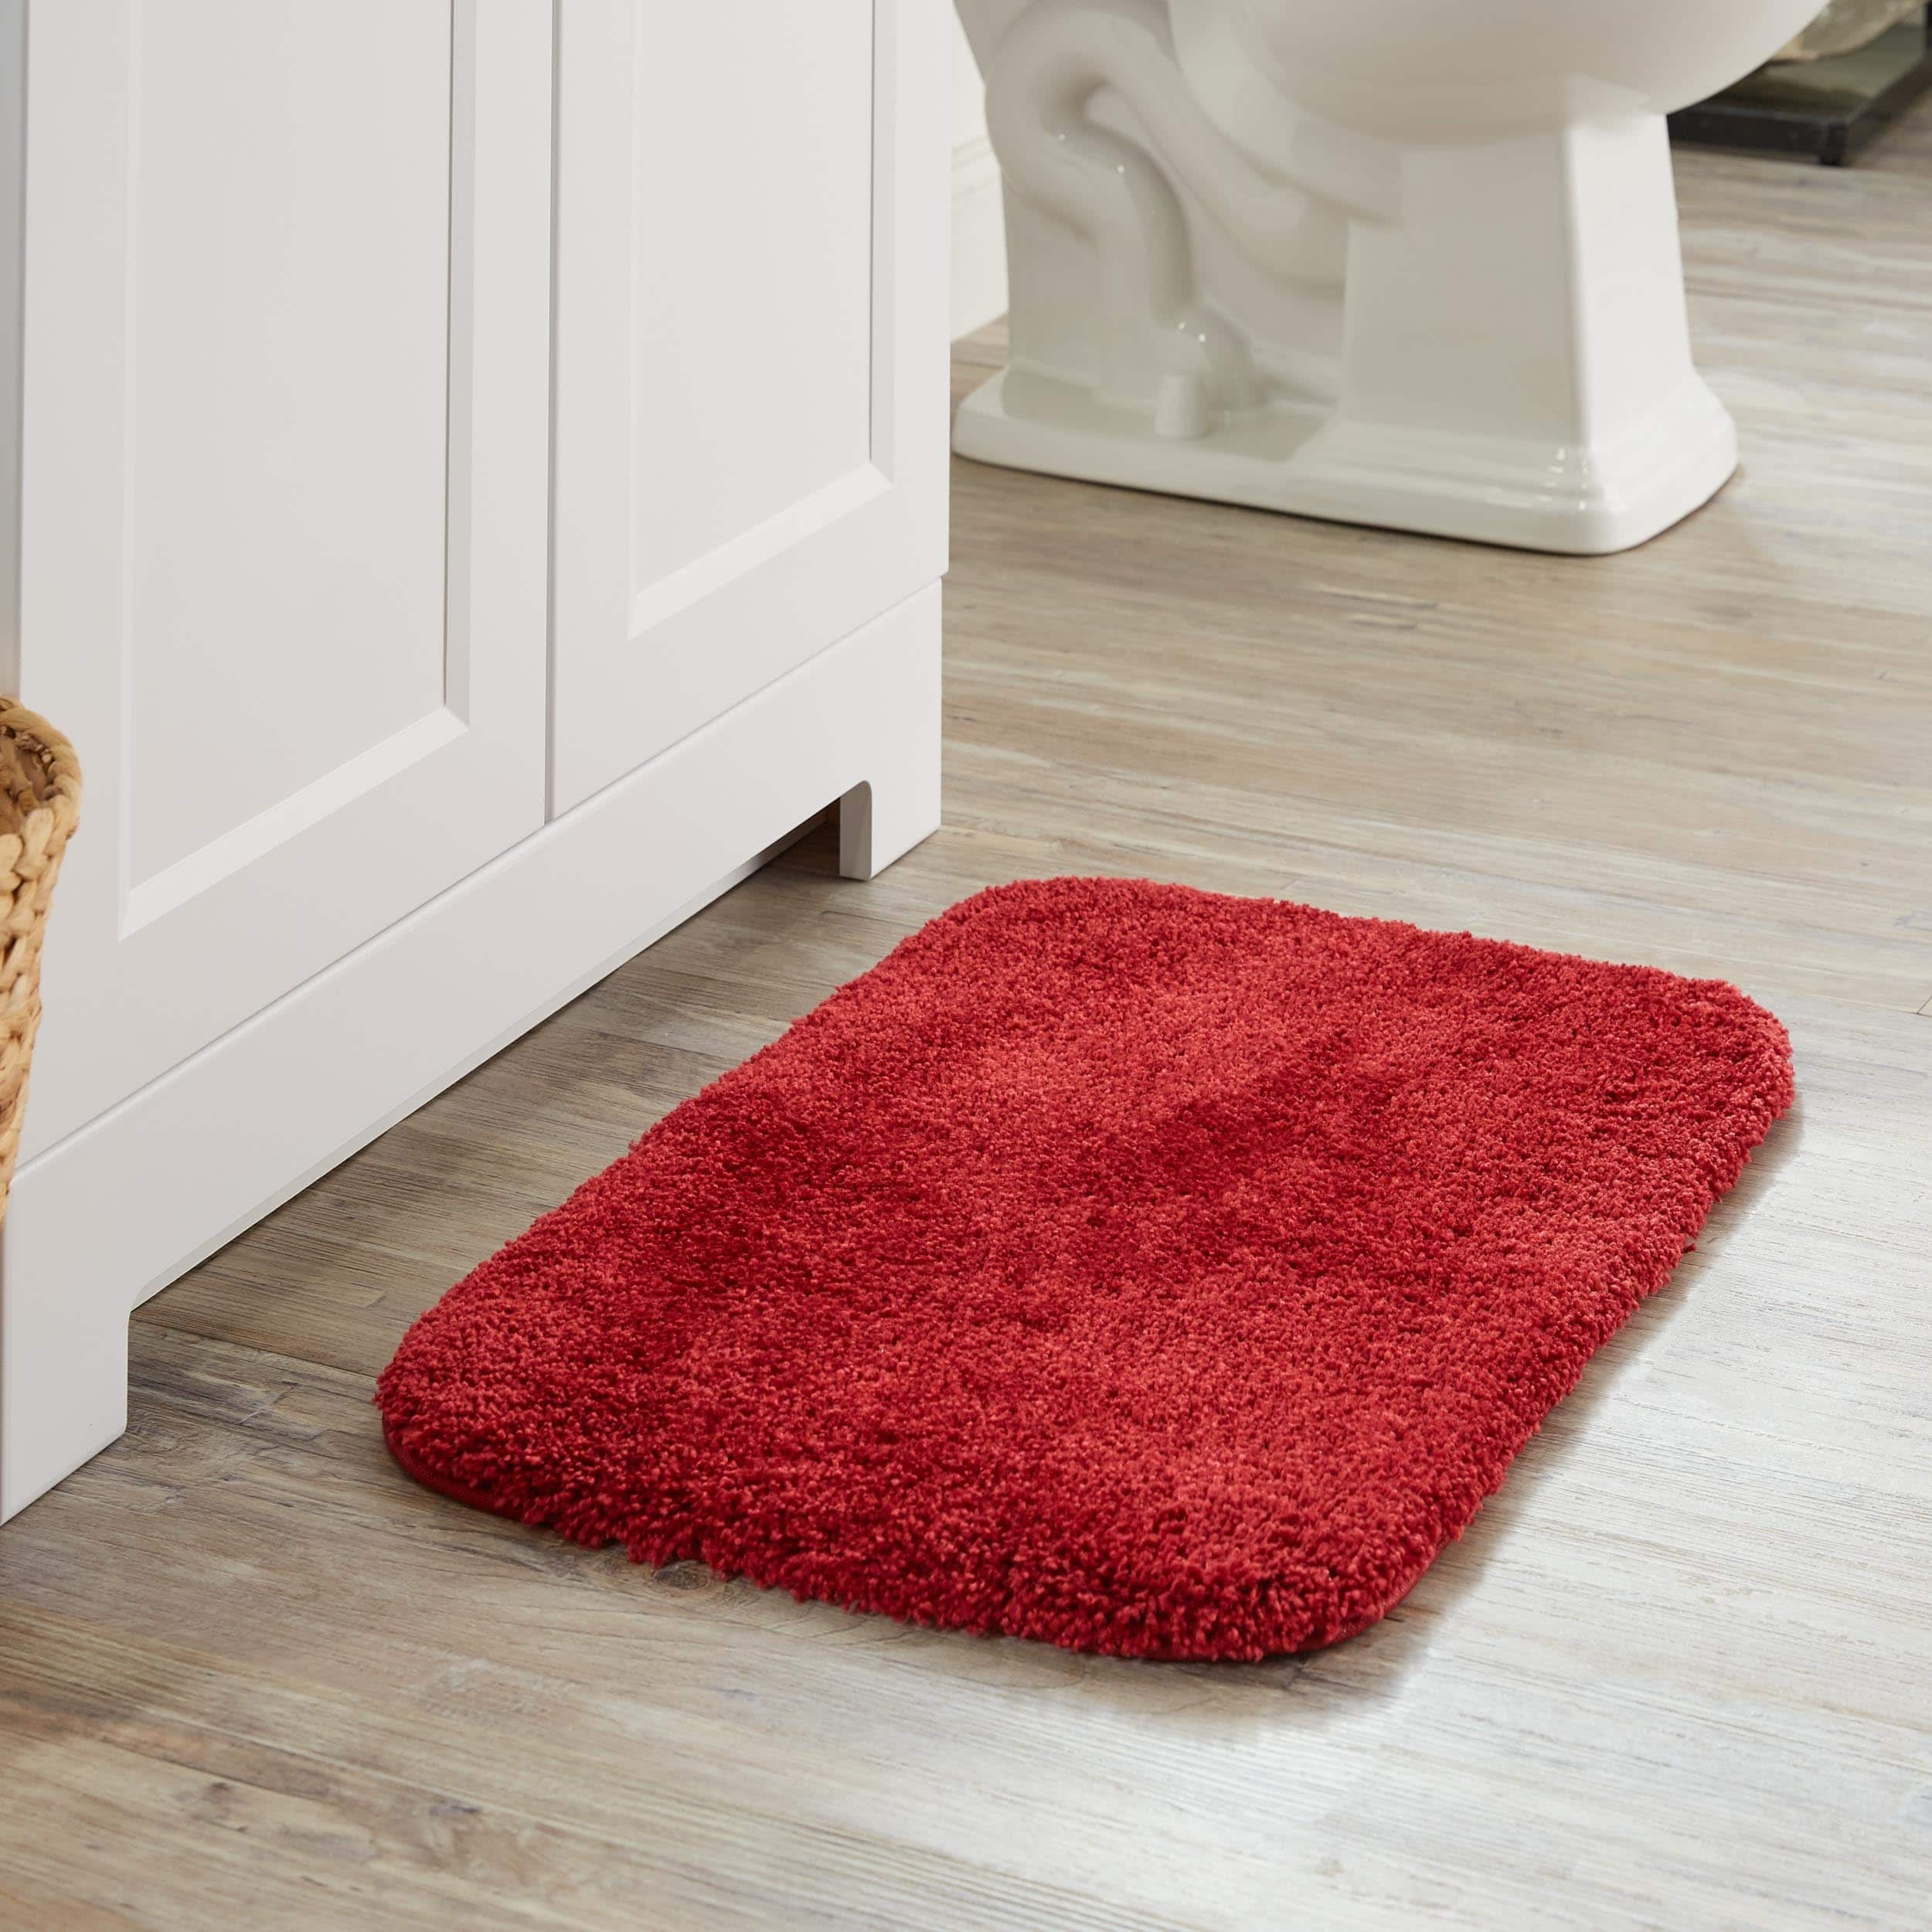 Overstock Com Online Shopping Bedding Furniture Electronics Jewelry Clothing More Red Bath Rug Bath Rugs Bath Rug [ 2500 x 2500 Pixel ]